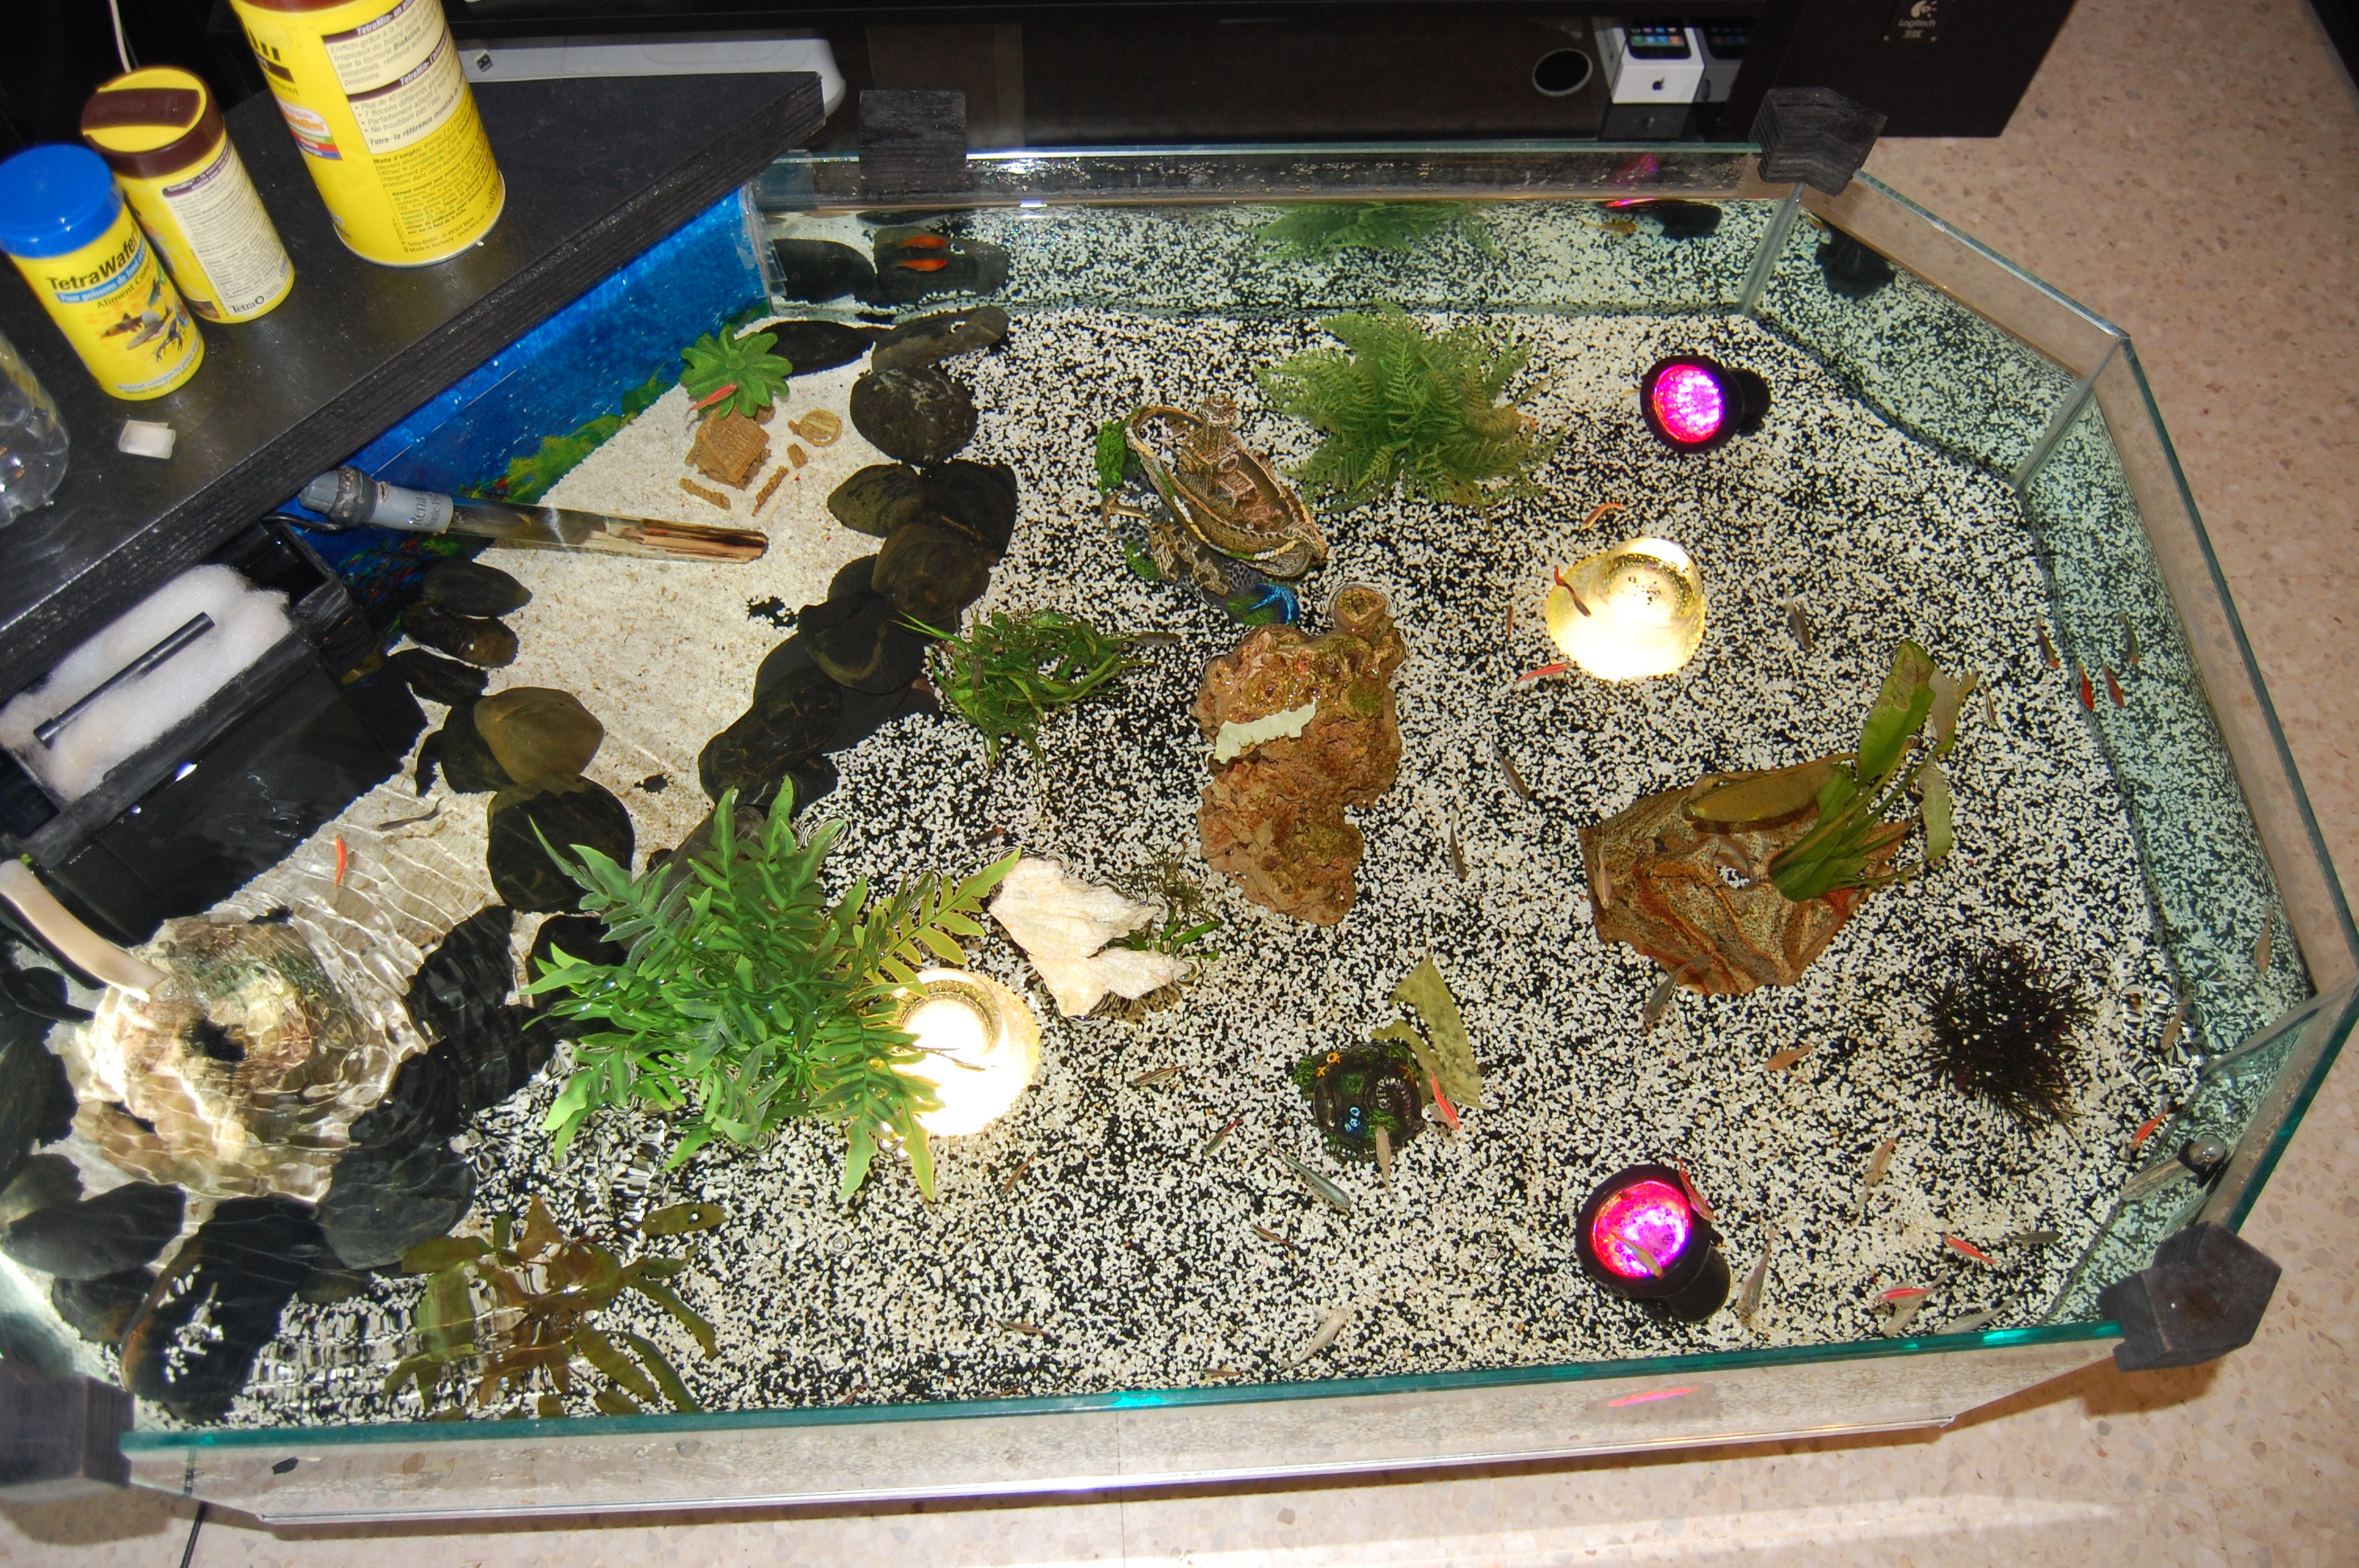 Dsc 0039 table basse aquarium fait maison lol lynka83 for Table fait maison